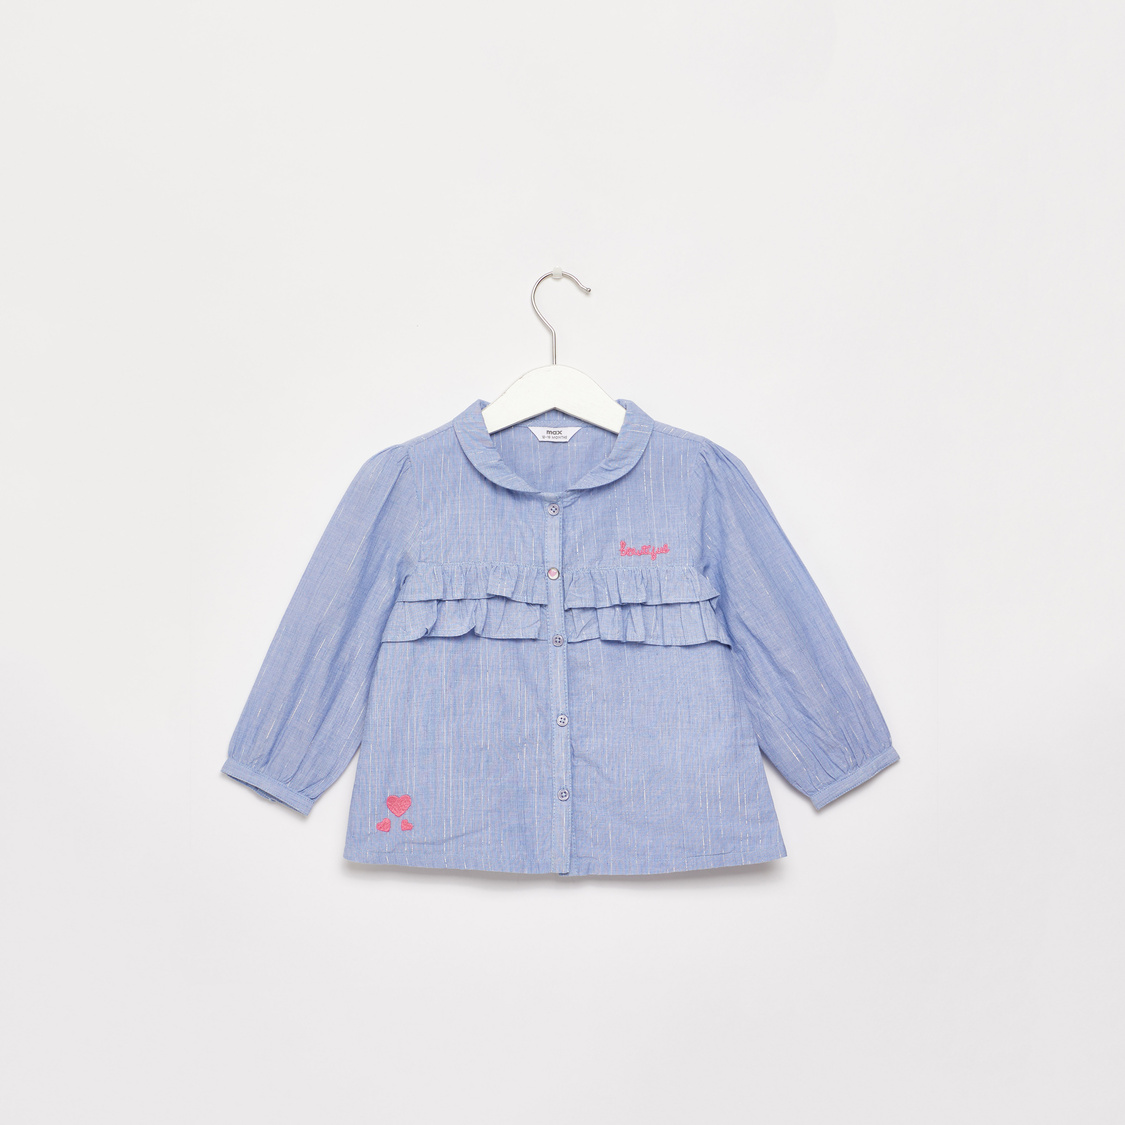 Textured Shirt with Long Sleeves and Frill Detail